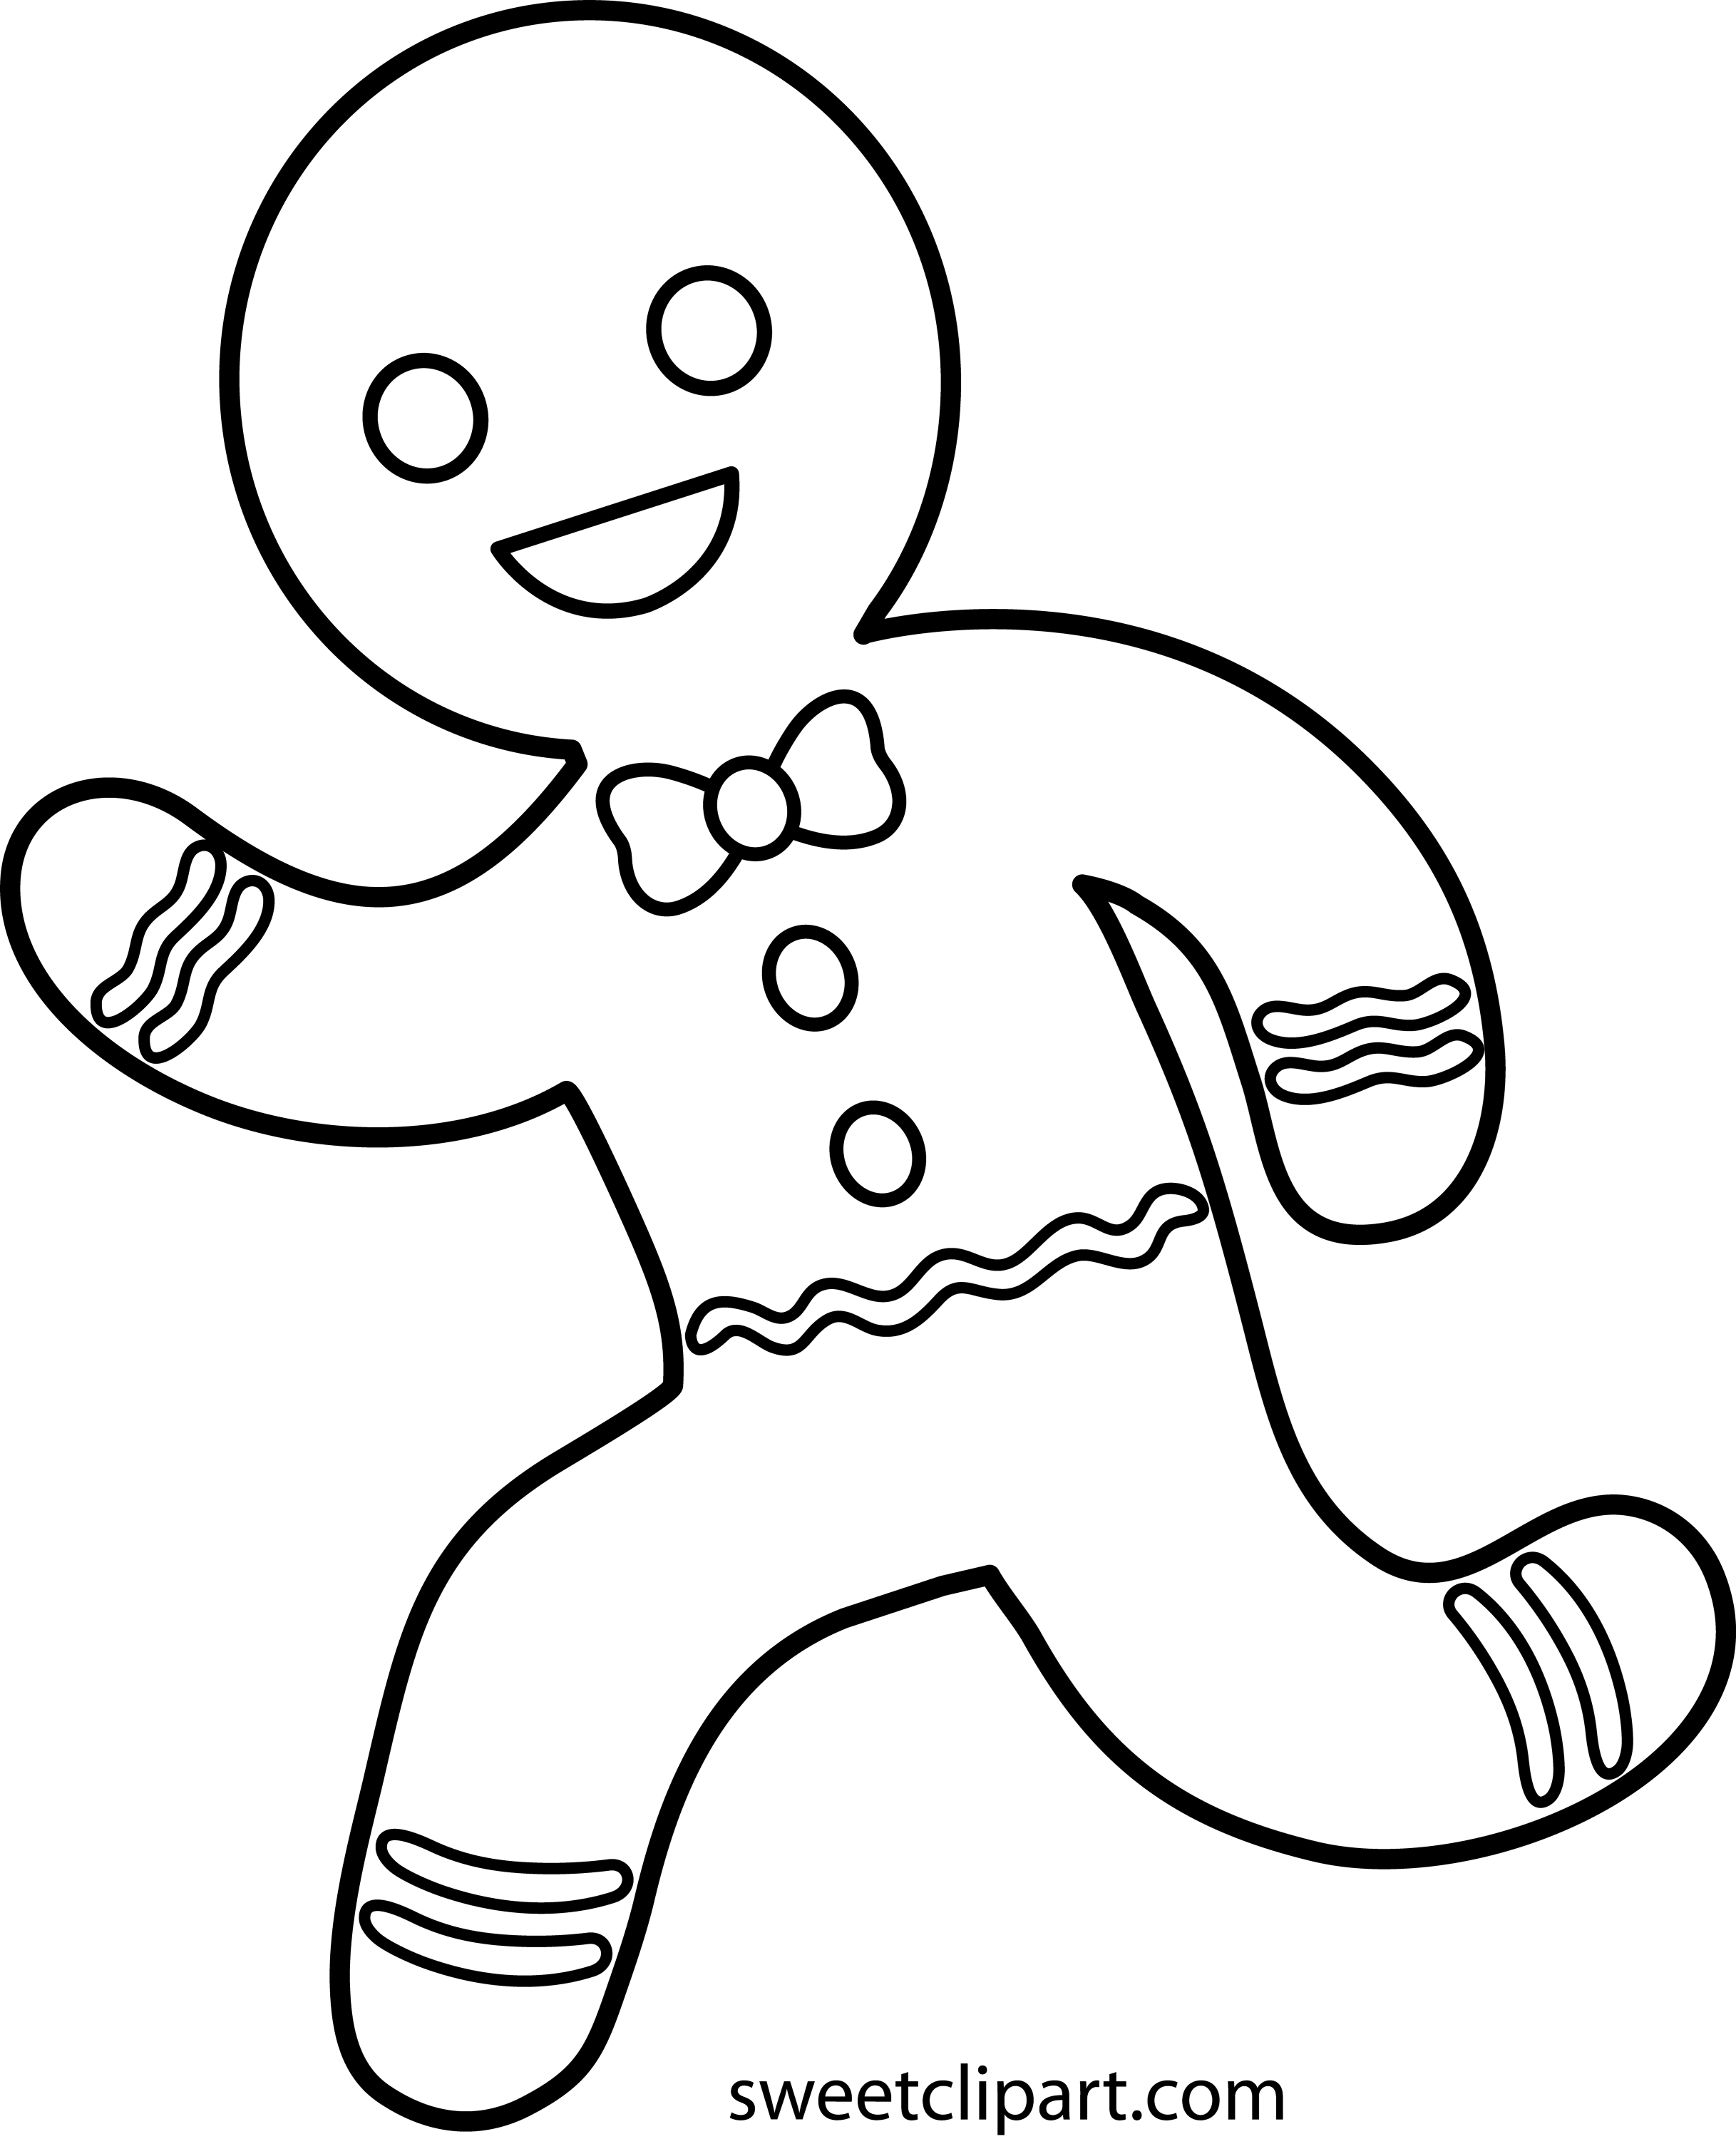 ginger bread man coloring page black and white cartoon of